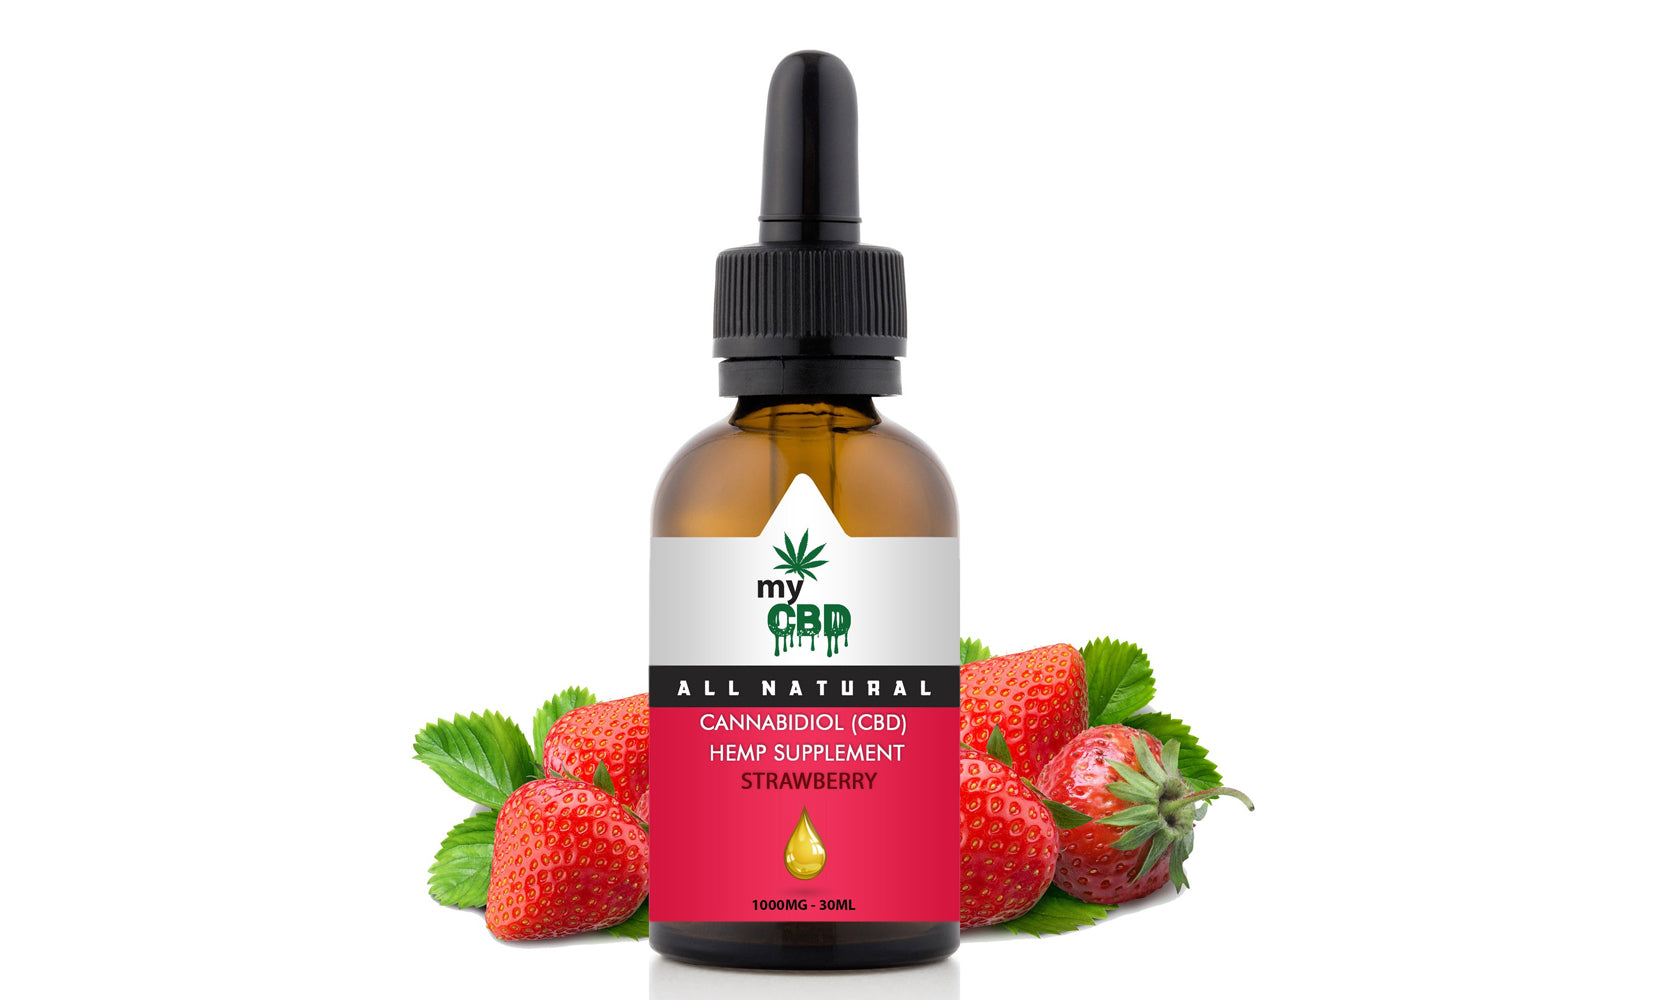 Flavoured Hempseed Oil Liquid Tincture from myCBD